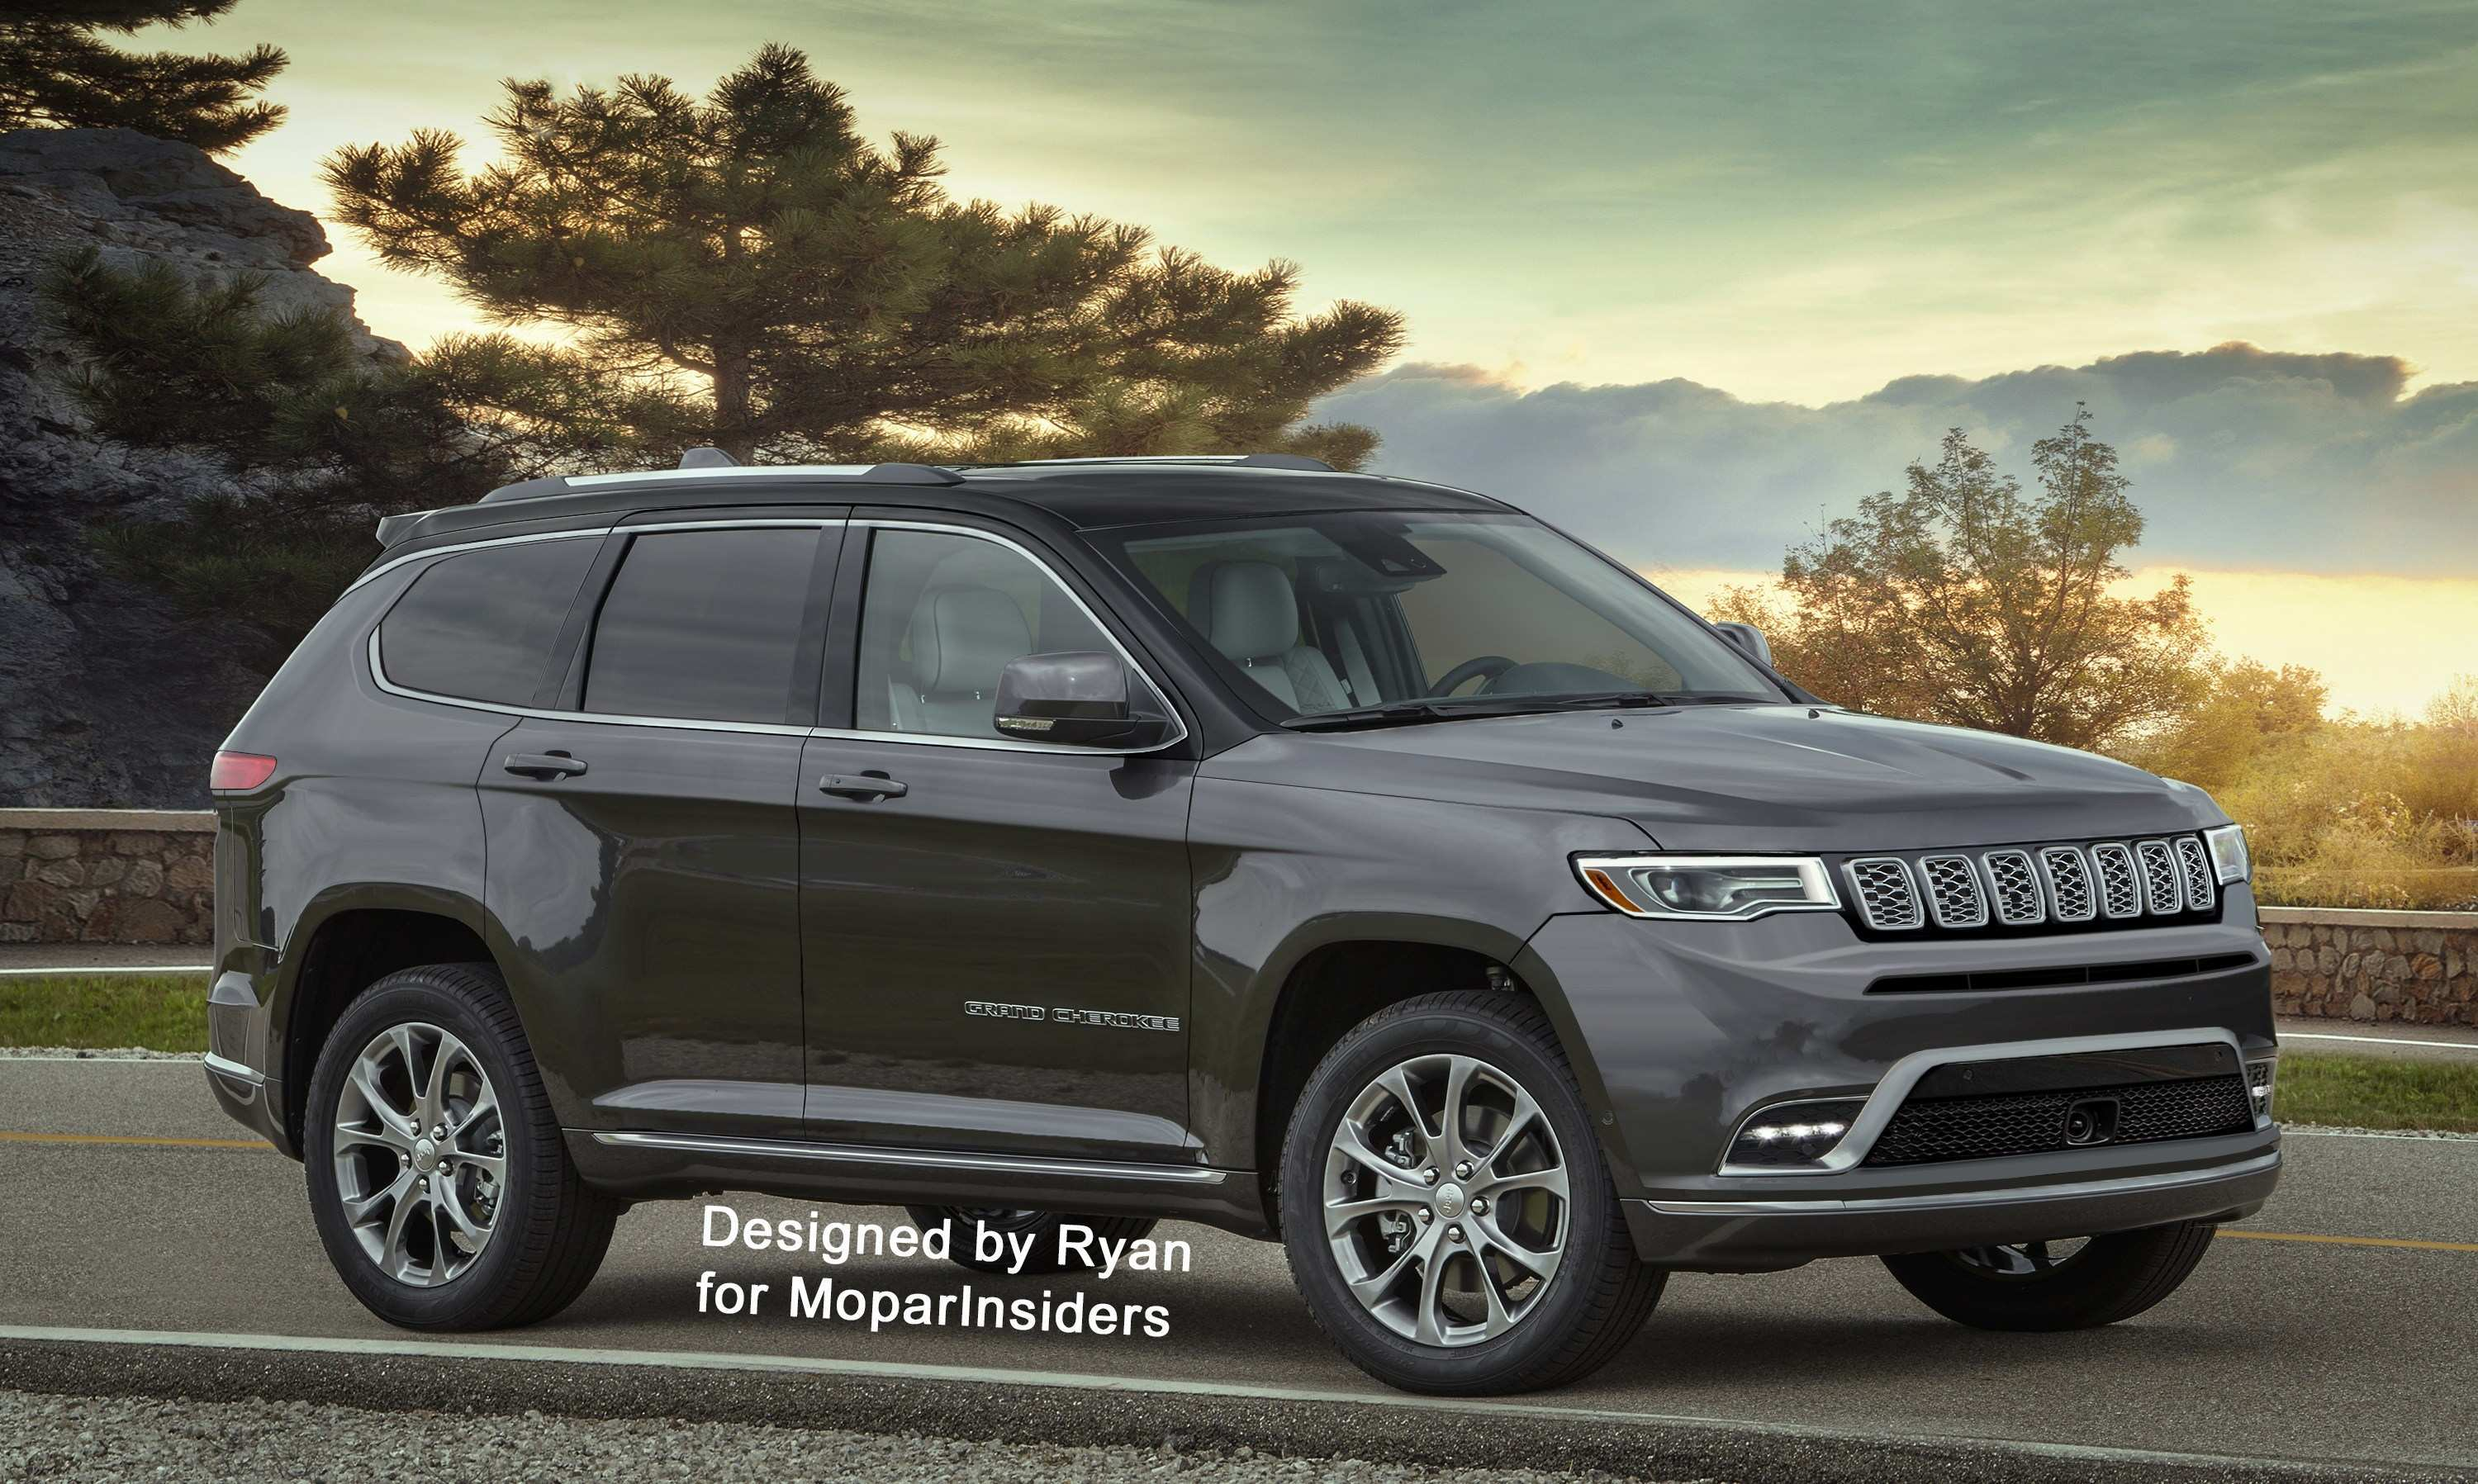 84 All New 2020 Jeep Grand Cherokee Redesign Images